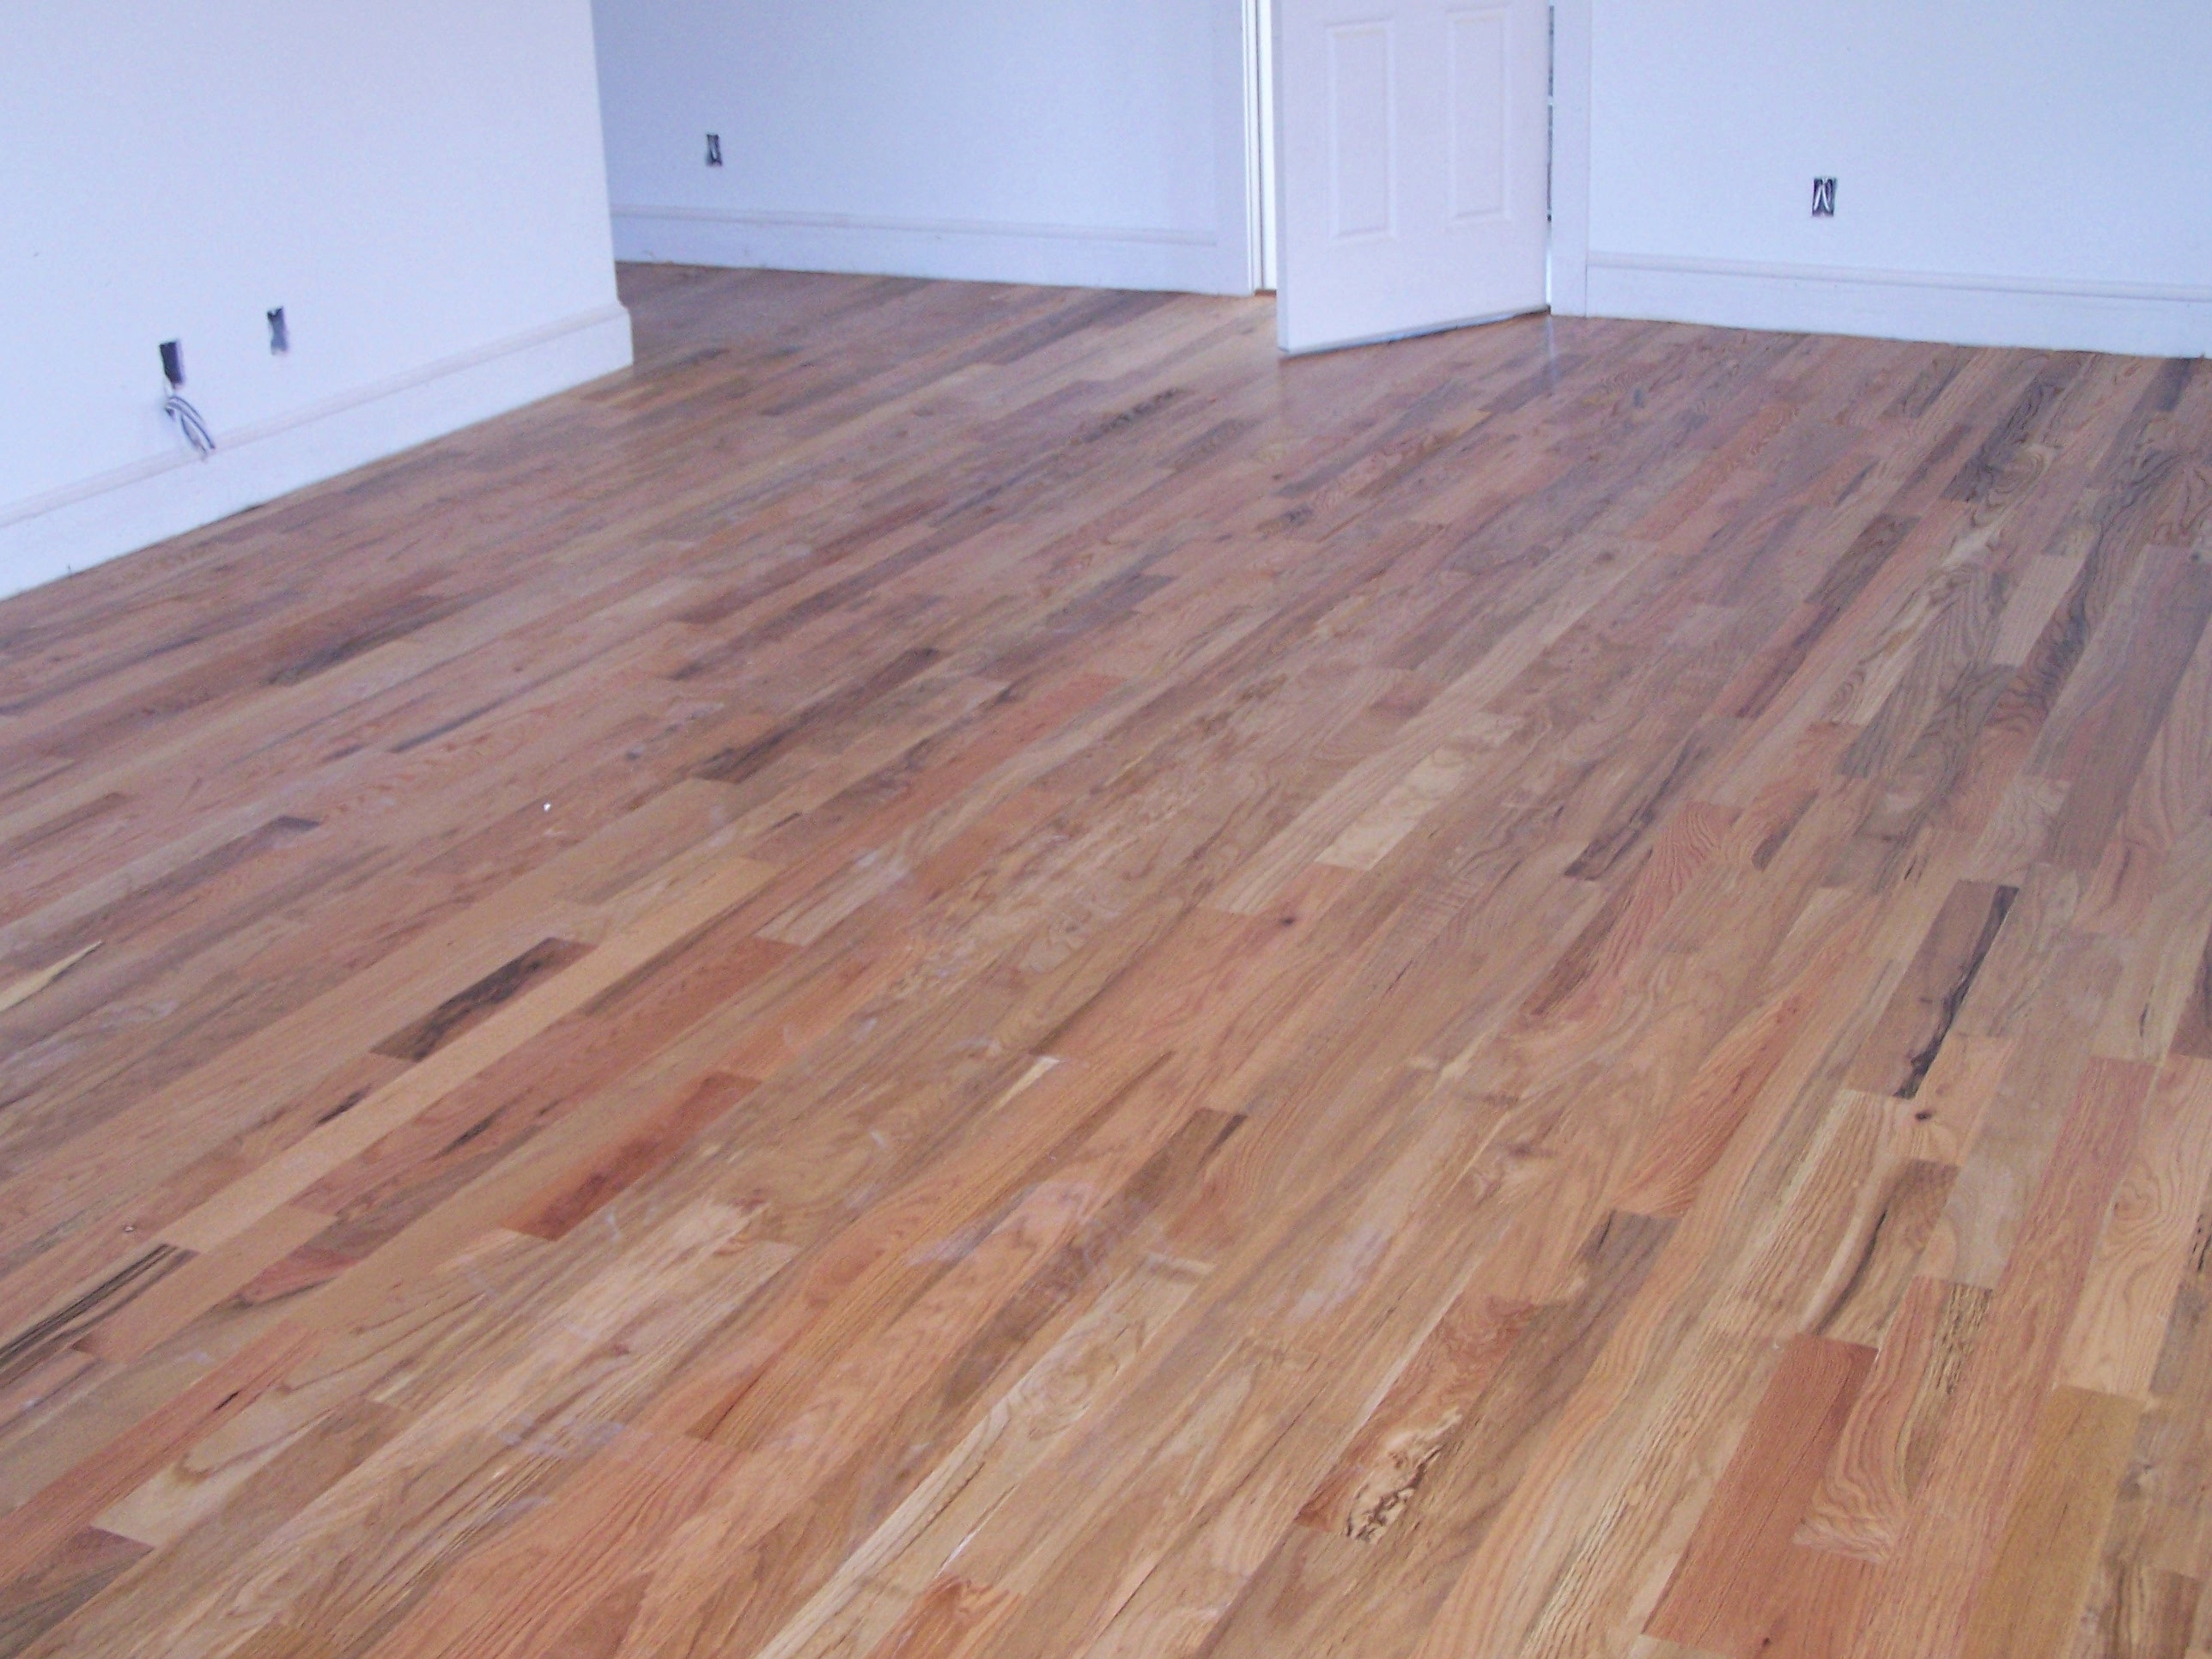 clearance hardwood flooring of clearance hardwood floors beautiful 50 new how to stain hardwood for clearance hardwood floors beautiful 50 new how to stain hardwood floors 50 s